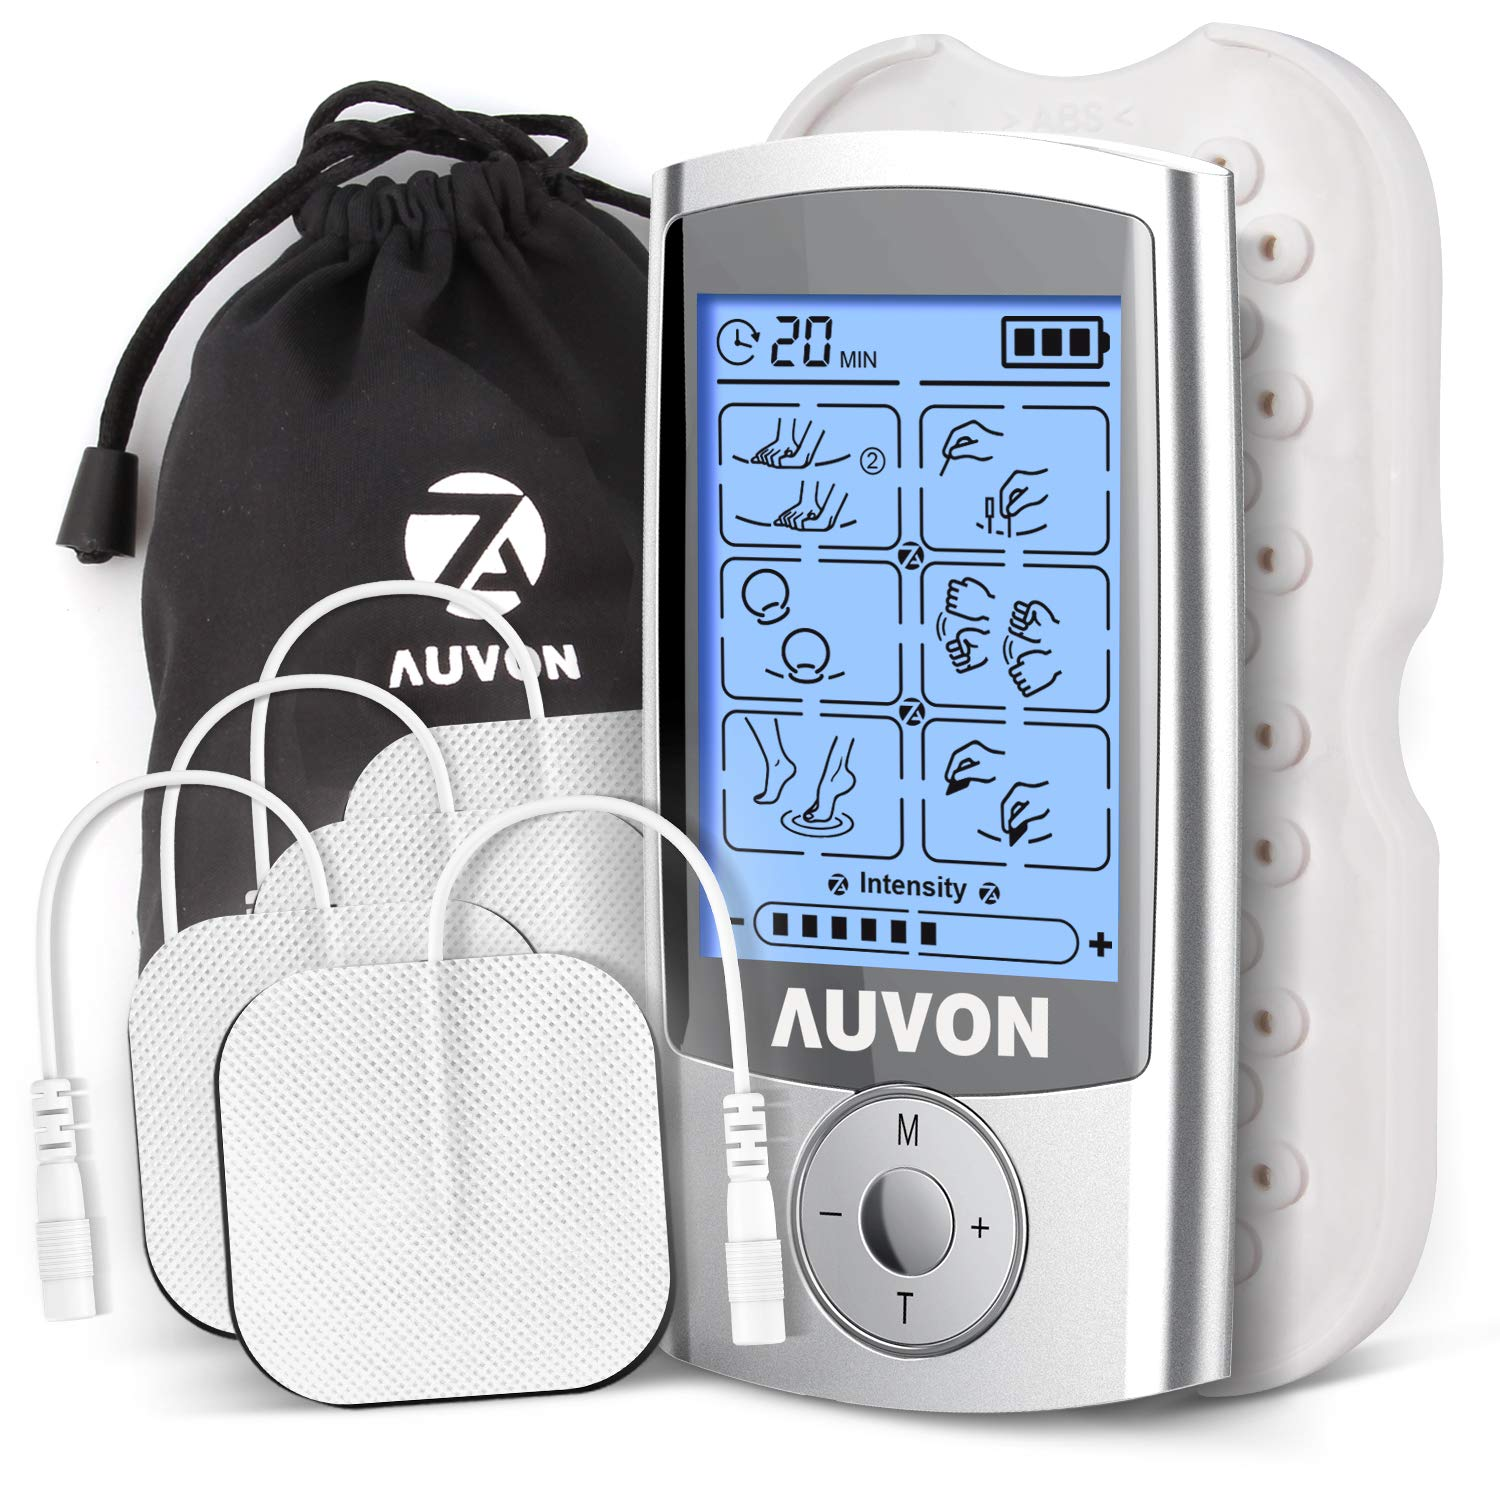 AUVON Rechargeable TENS Unit Muscle Stimulator (FDA 510K Cleared), 2nd Gen 16 Modes 2-in-1 EMS TENS Machine with Upgraded Self-Adhesive Reusable TENS Electrodes Pads (2''x2'') for Pain Relief